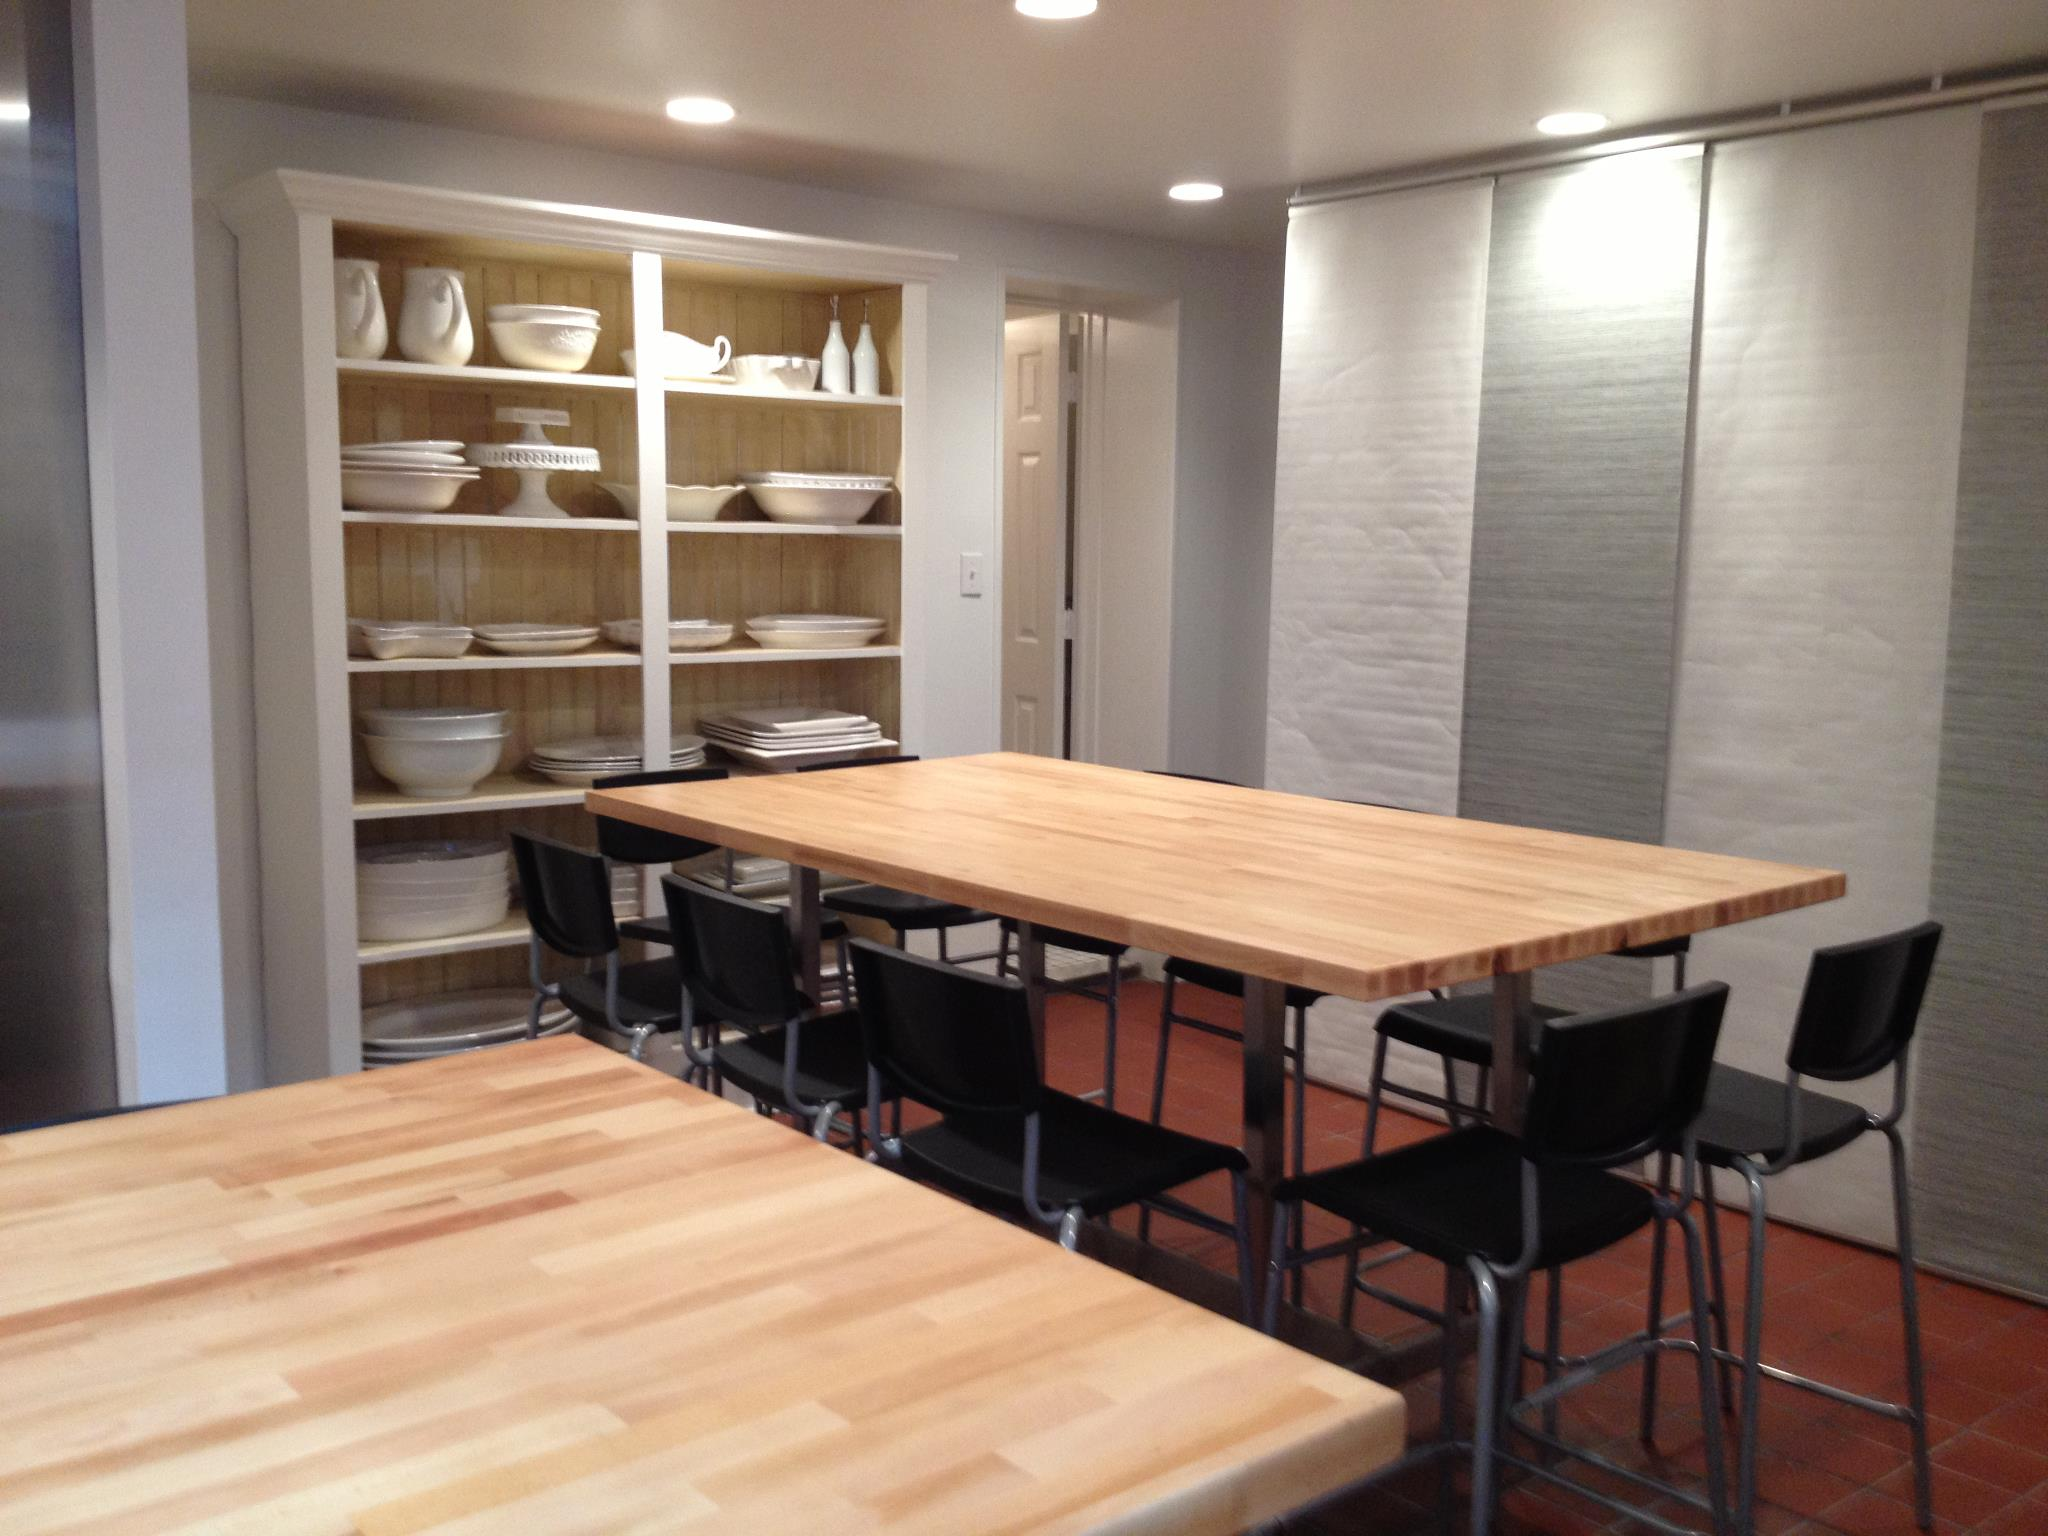 High Quality Commercial Kitchen Venue For Rent In New York